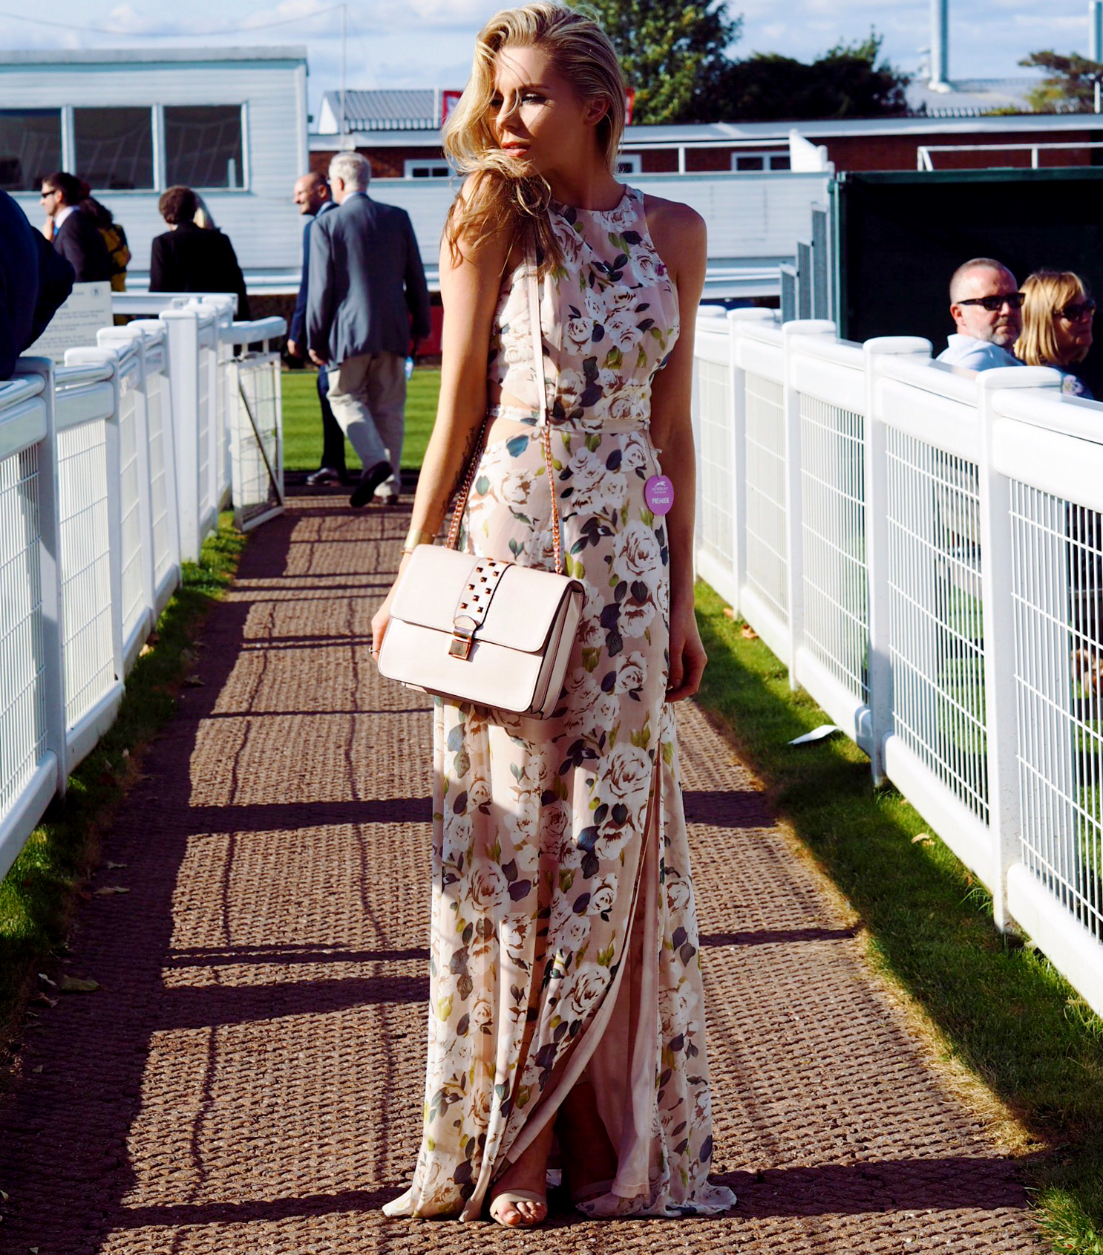 THE RACES, WHAT TO WEAR TO THE RACES, NEWBURY RACECOURSE, LAURA BLAIR, LONDON FASHION GIRL